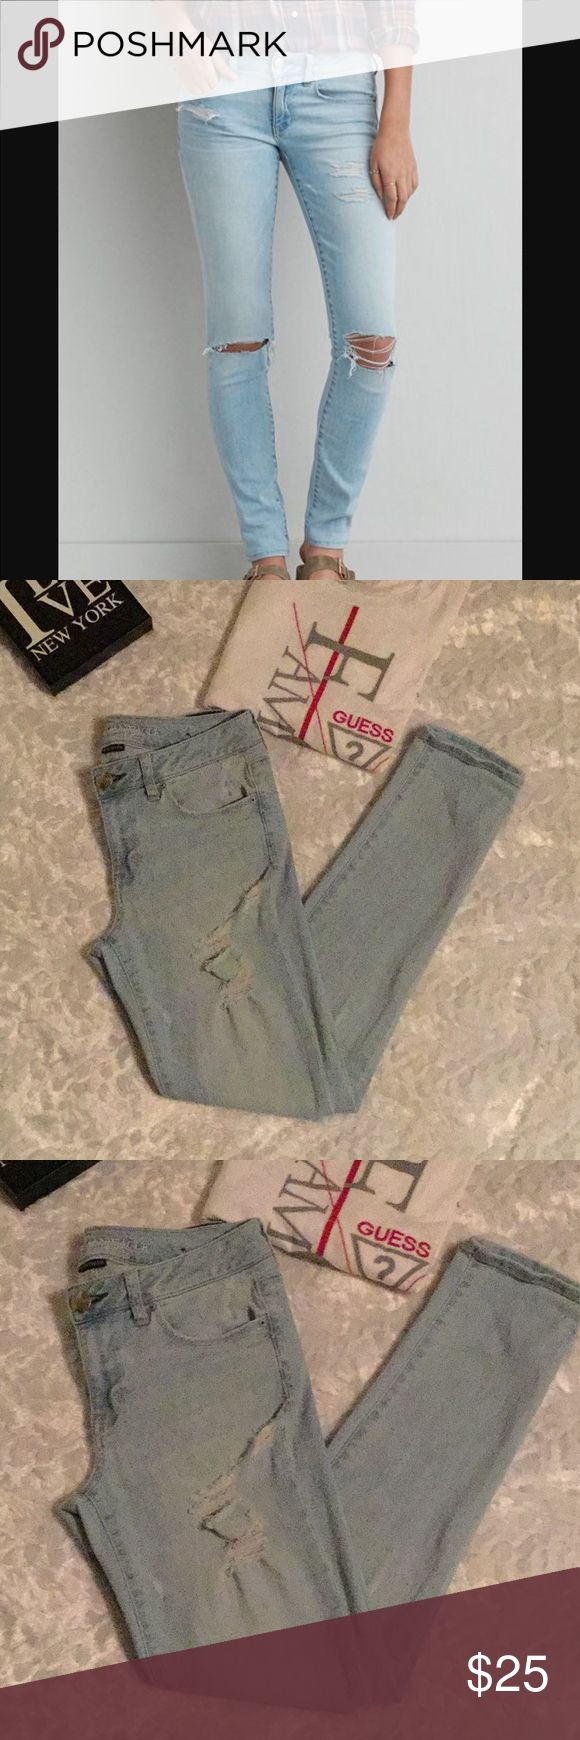 America Eagle Outfitters Distress Jeans 8 Great Condition, no Flaws. The perfect amount of distress. Size 8. American Eagle Outfitters Pants Straight Leg